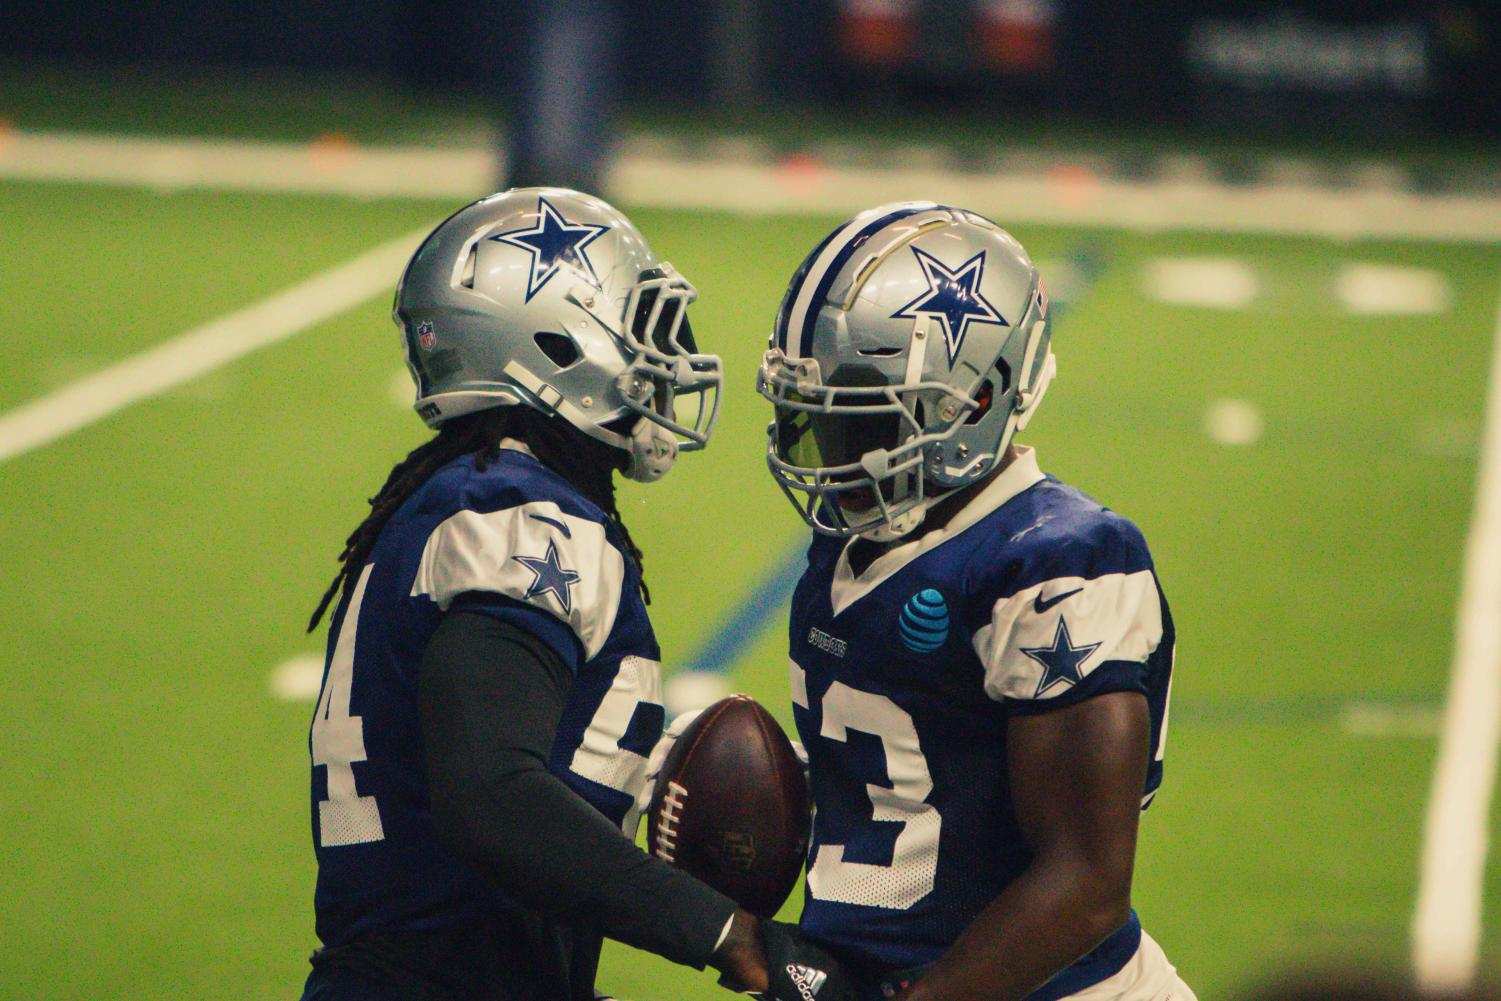 Linebacker+Jaylon+Smith+and+Tyree+Robinson+pass+the+ball+between+themselves+during+practice+at+the+Ford+Center+on+Tuesday%2C+Aug.+21%2C+2018.++